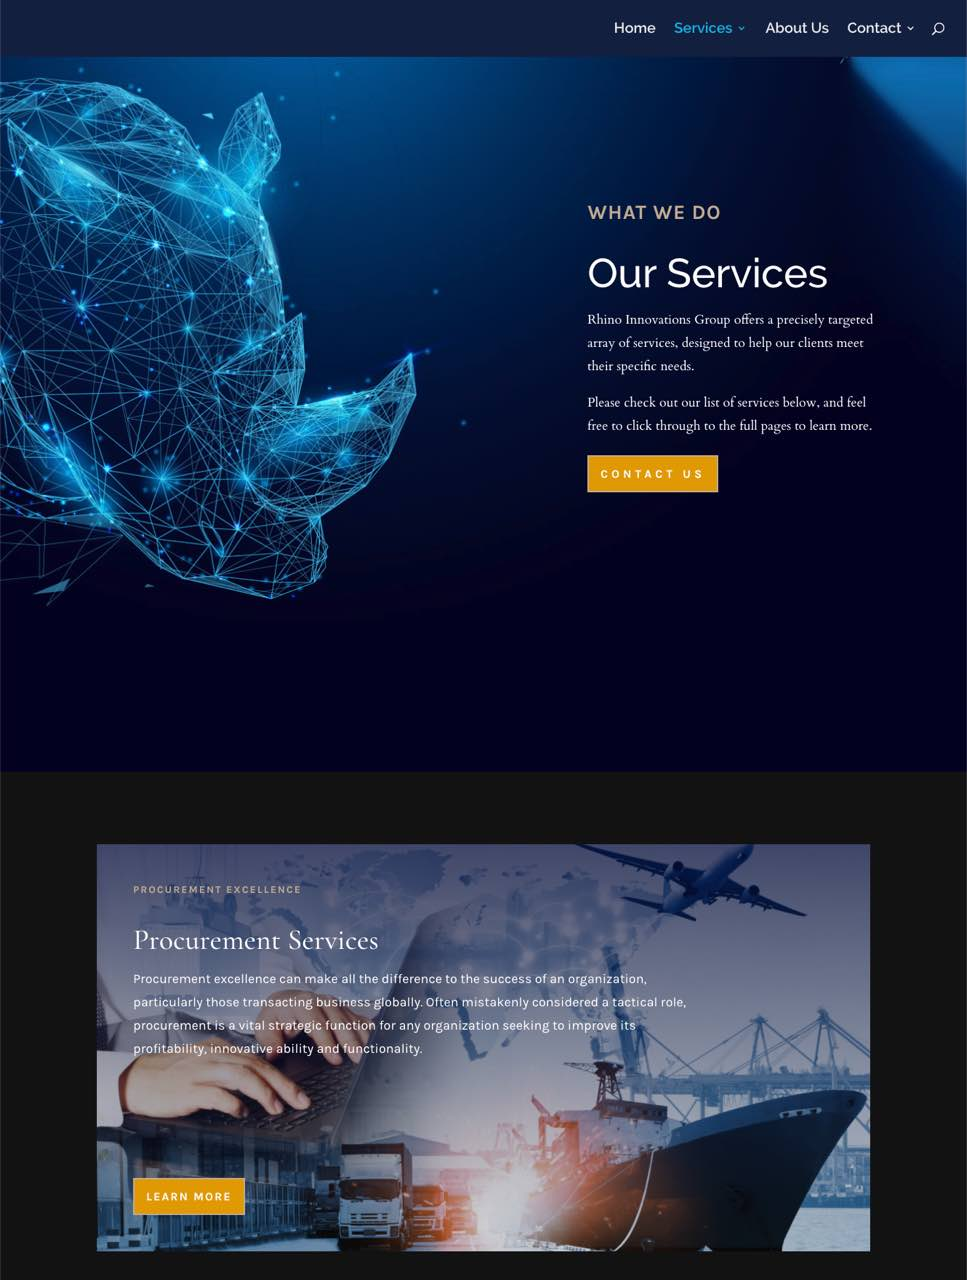 rhino innovations group services page